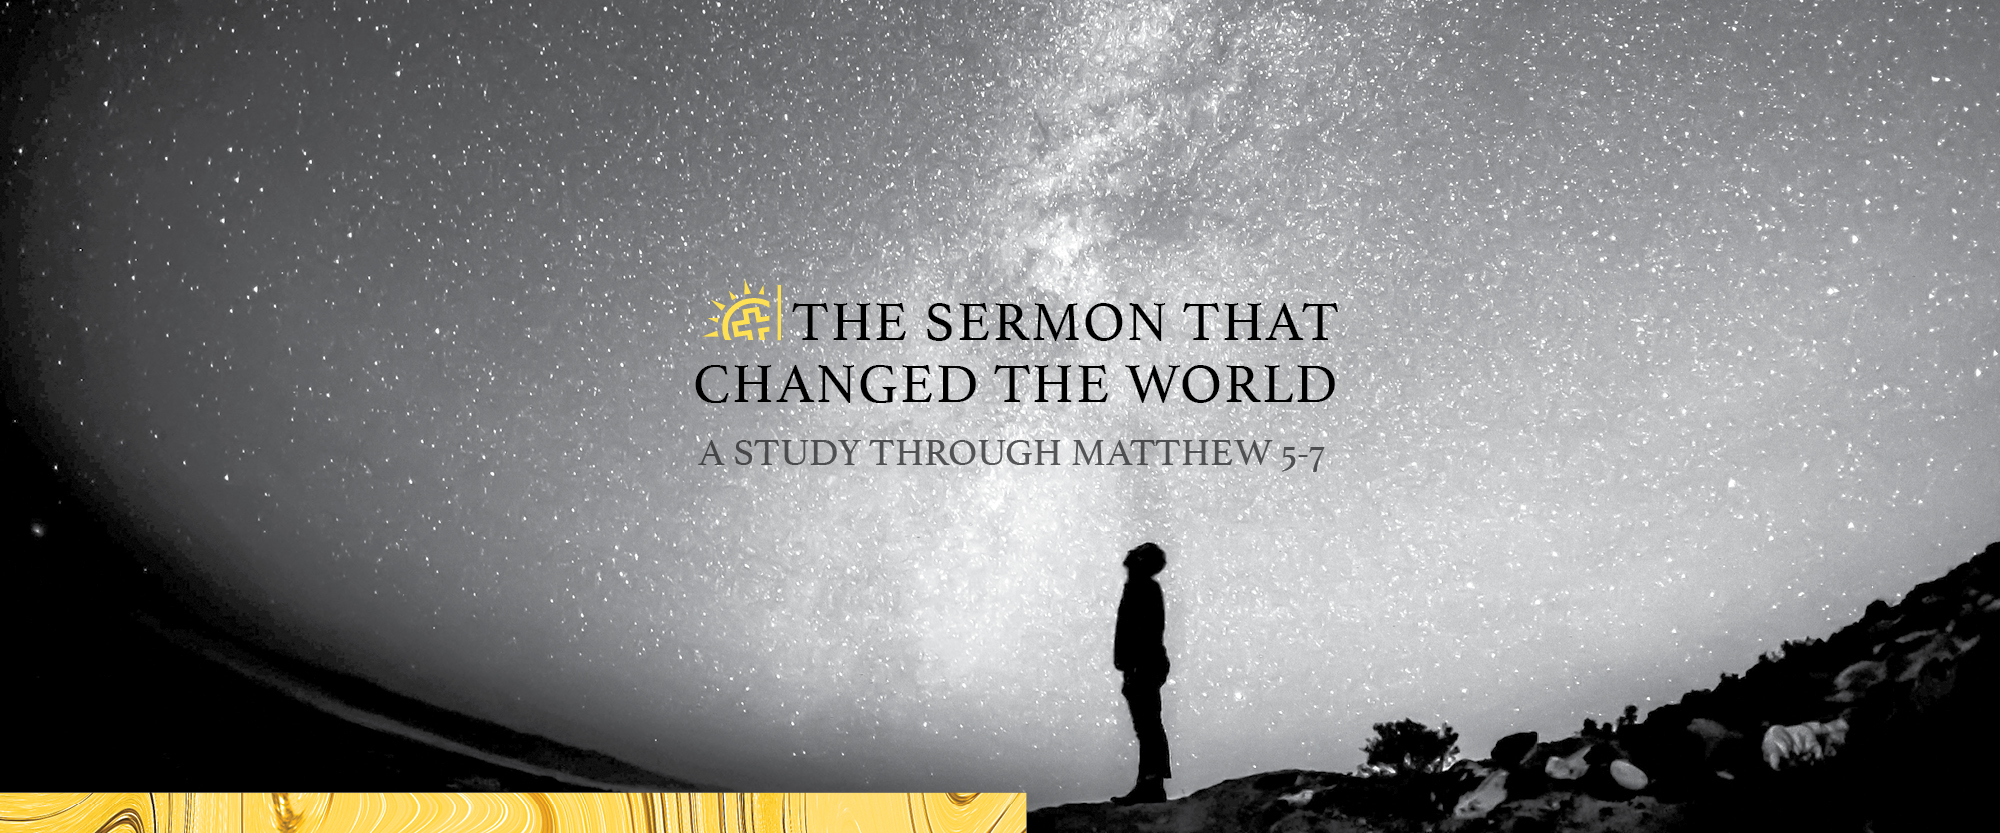 The Sermon That Changed The World | Calvary Chapel Fort